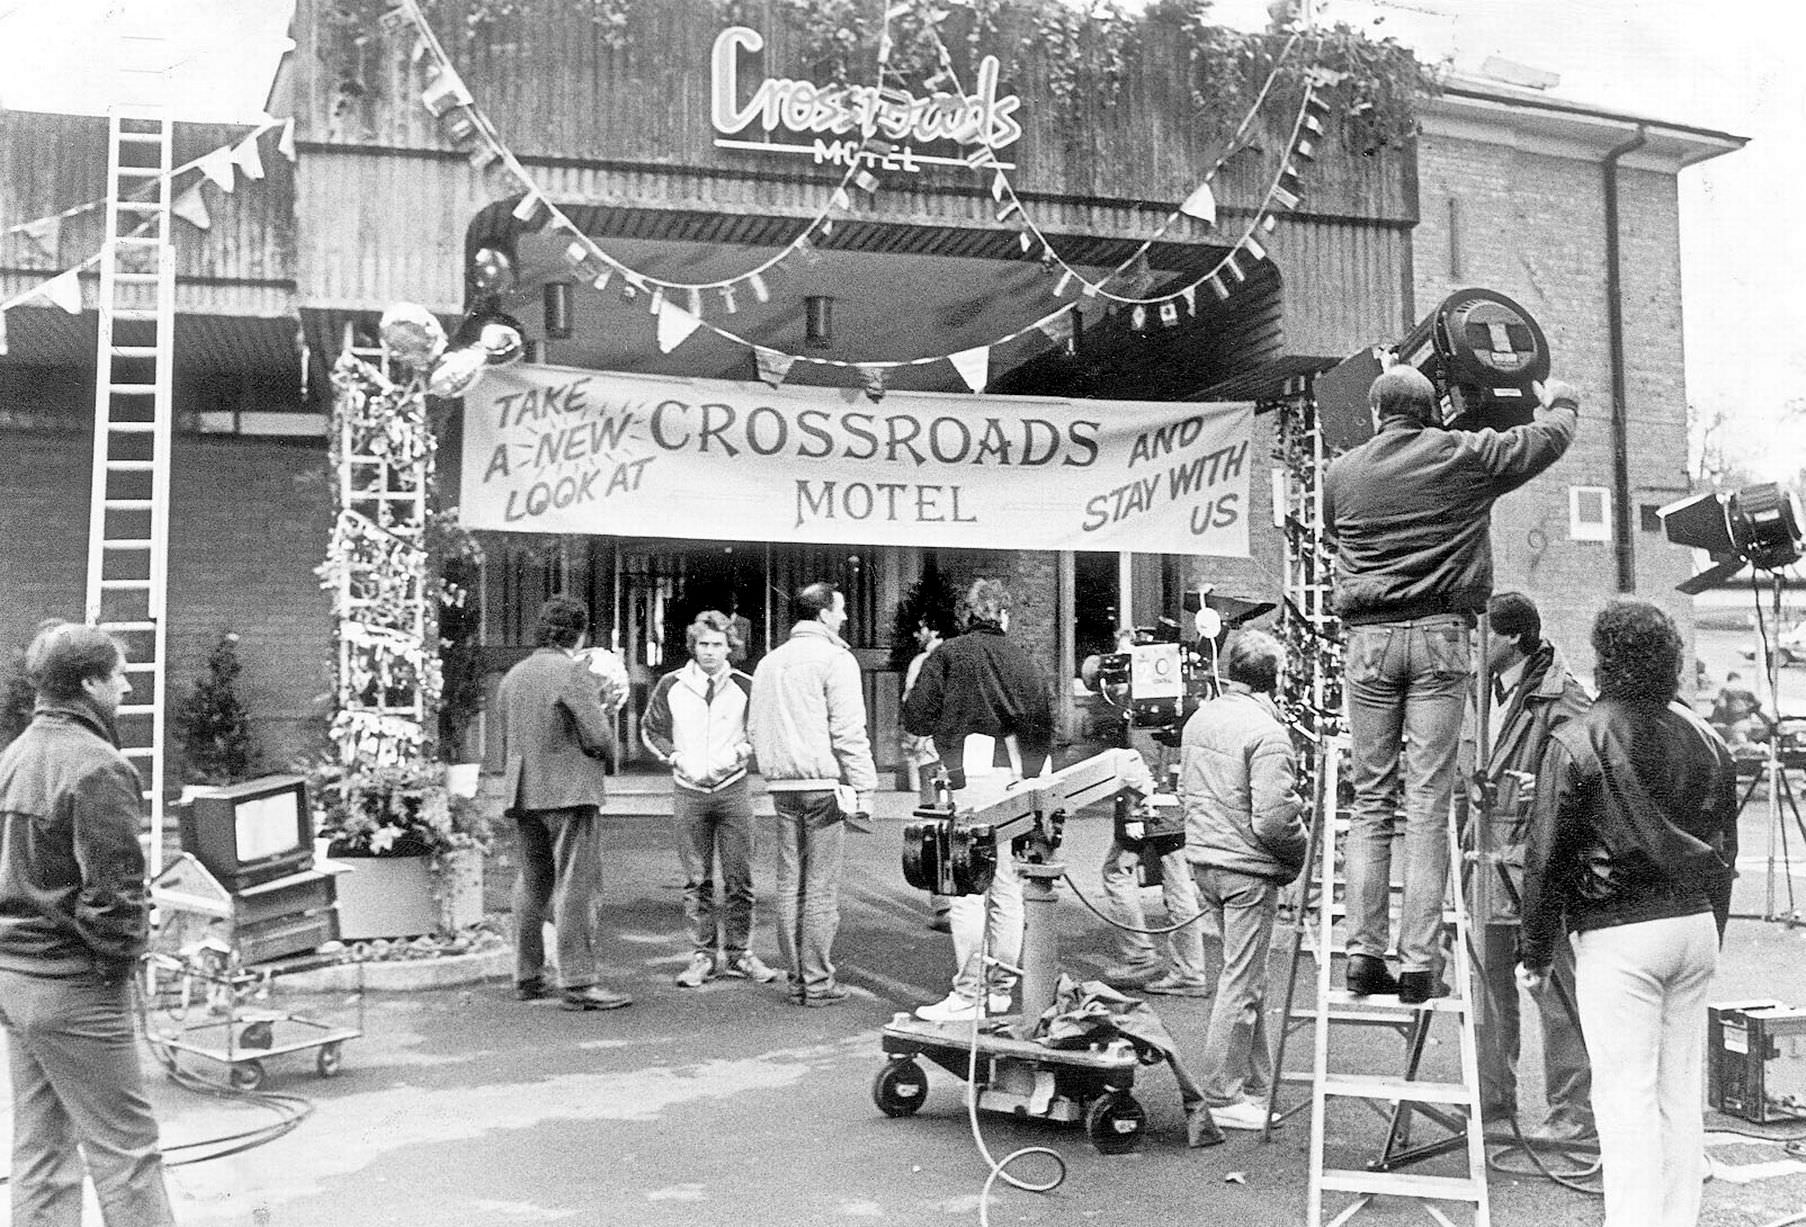 Penns Hall Hotel in Penns Lane, Walmley, being set up as the Crossroads Motel for filming, 24th May 1985.